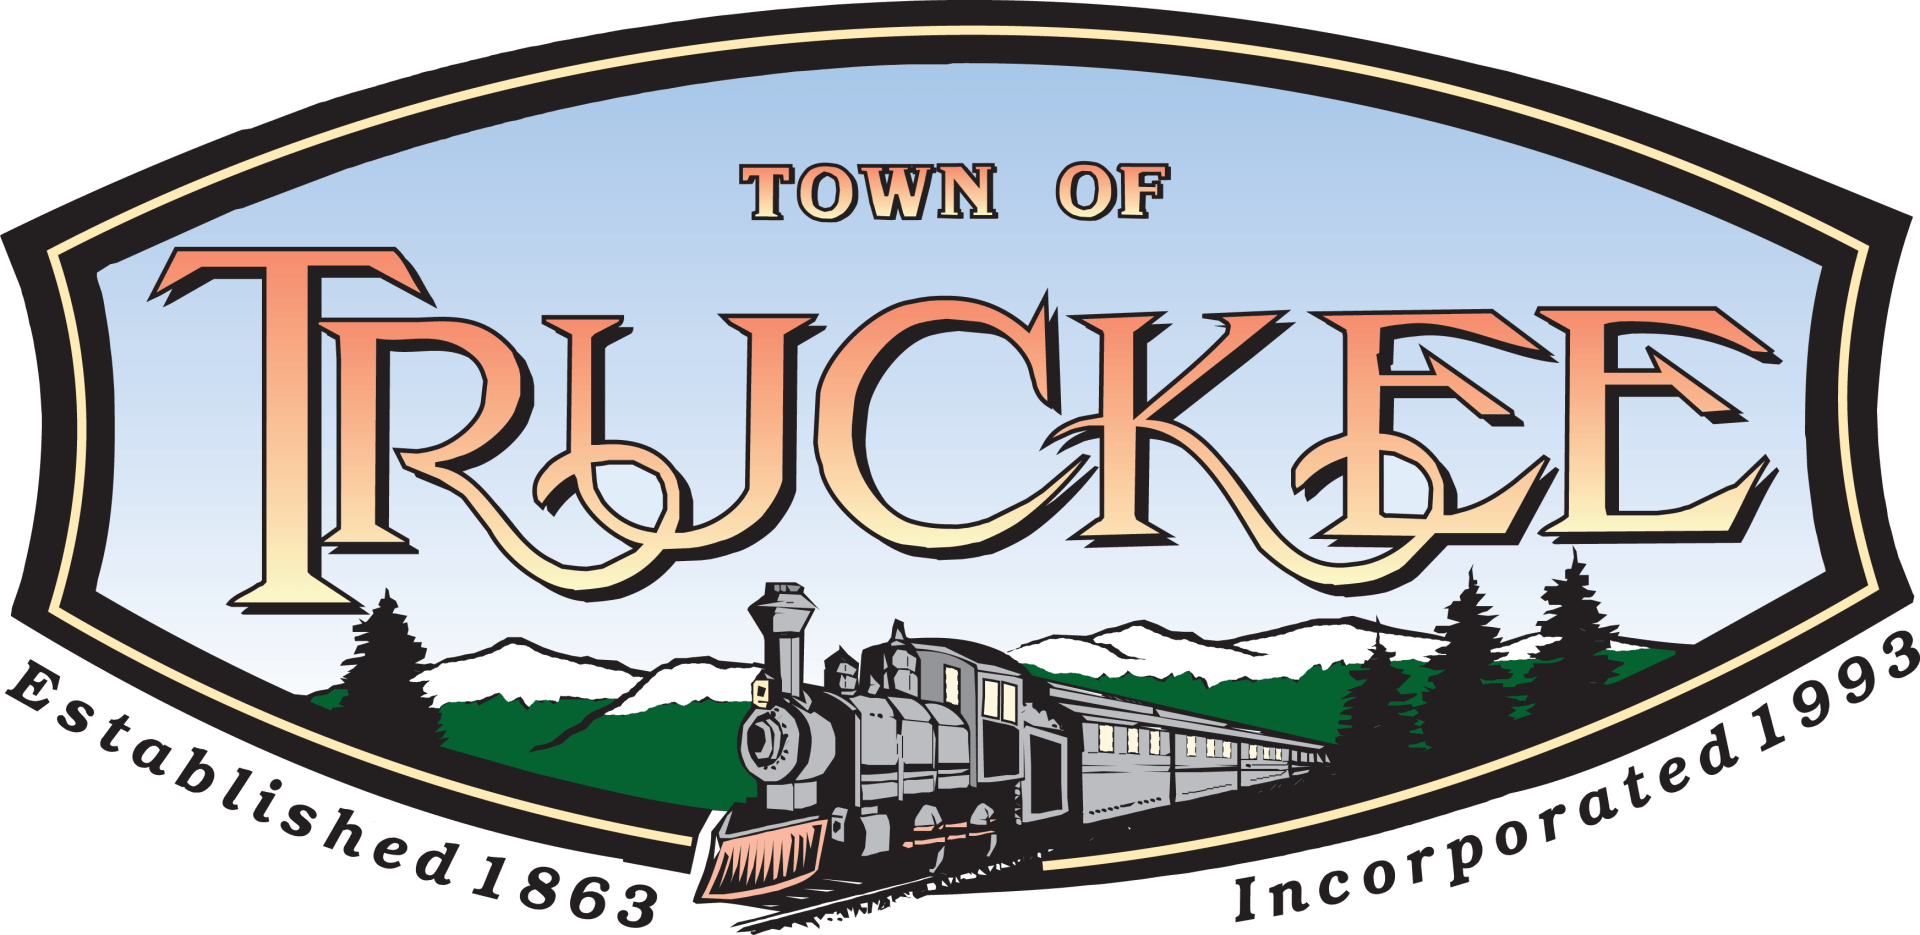 Truckee Color Logo JPEG